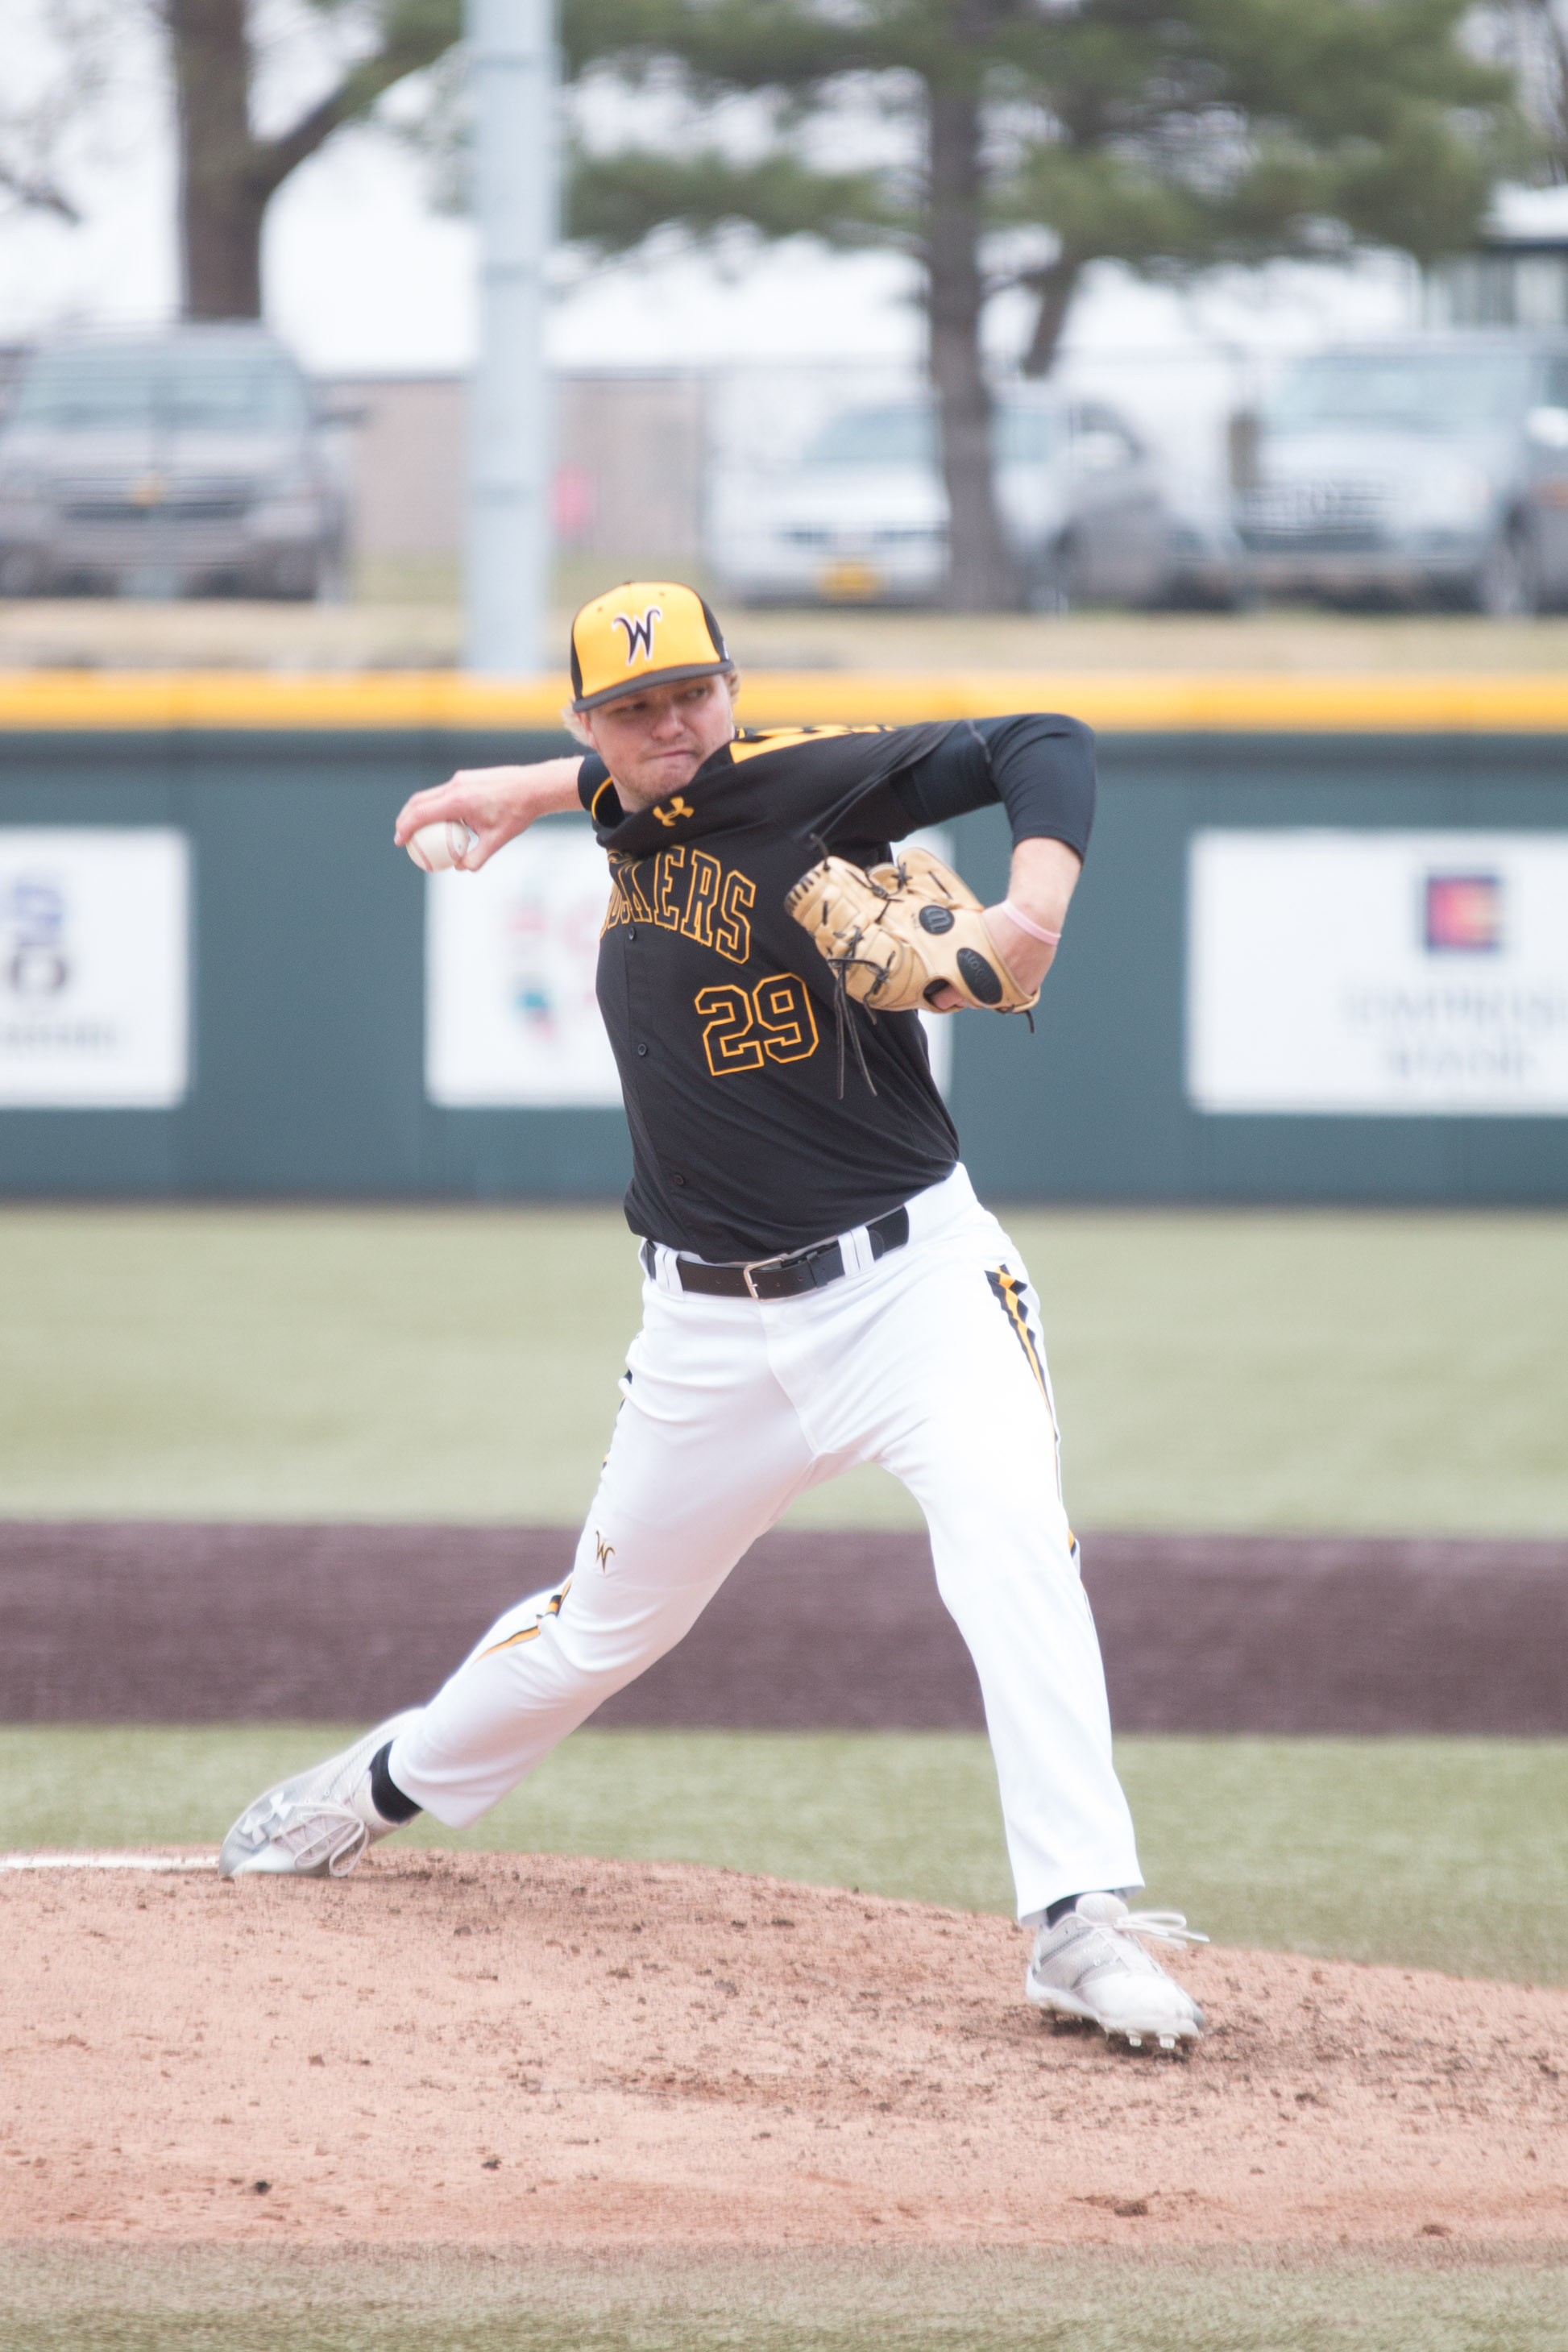 Freshman Tommy Barnhouse winds up a pitch during the game against Valparaiso Saturday afternoon.